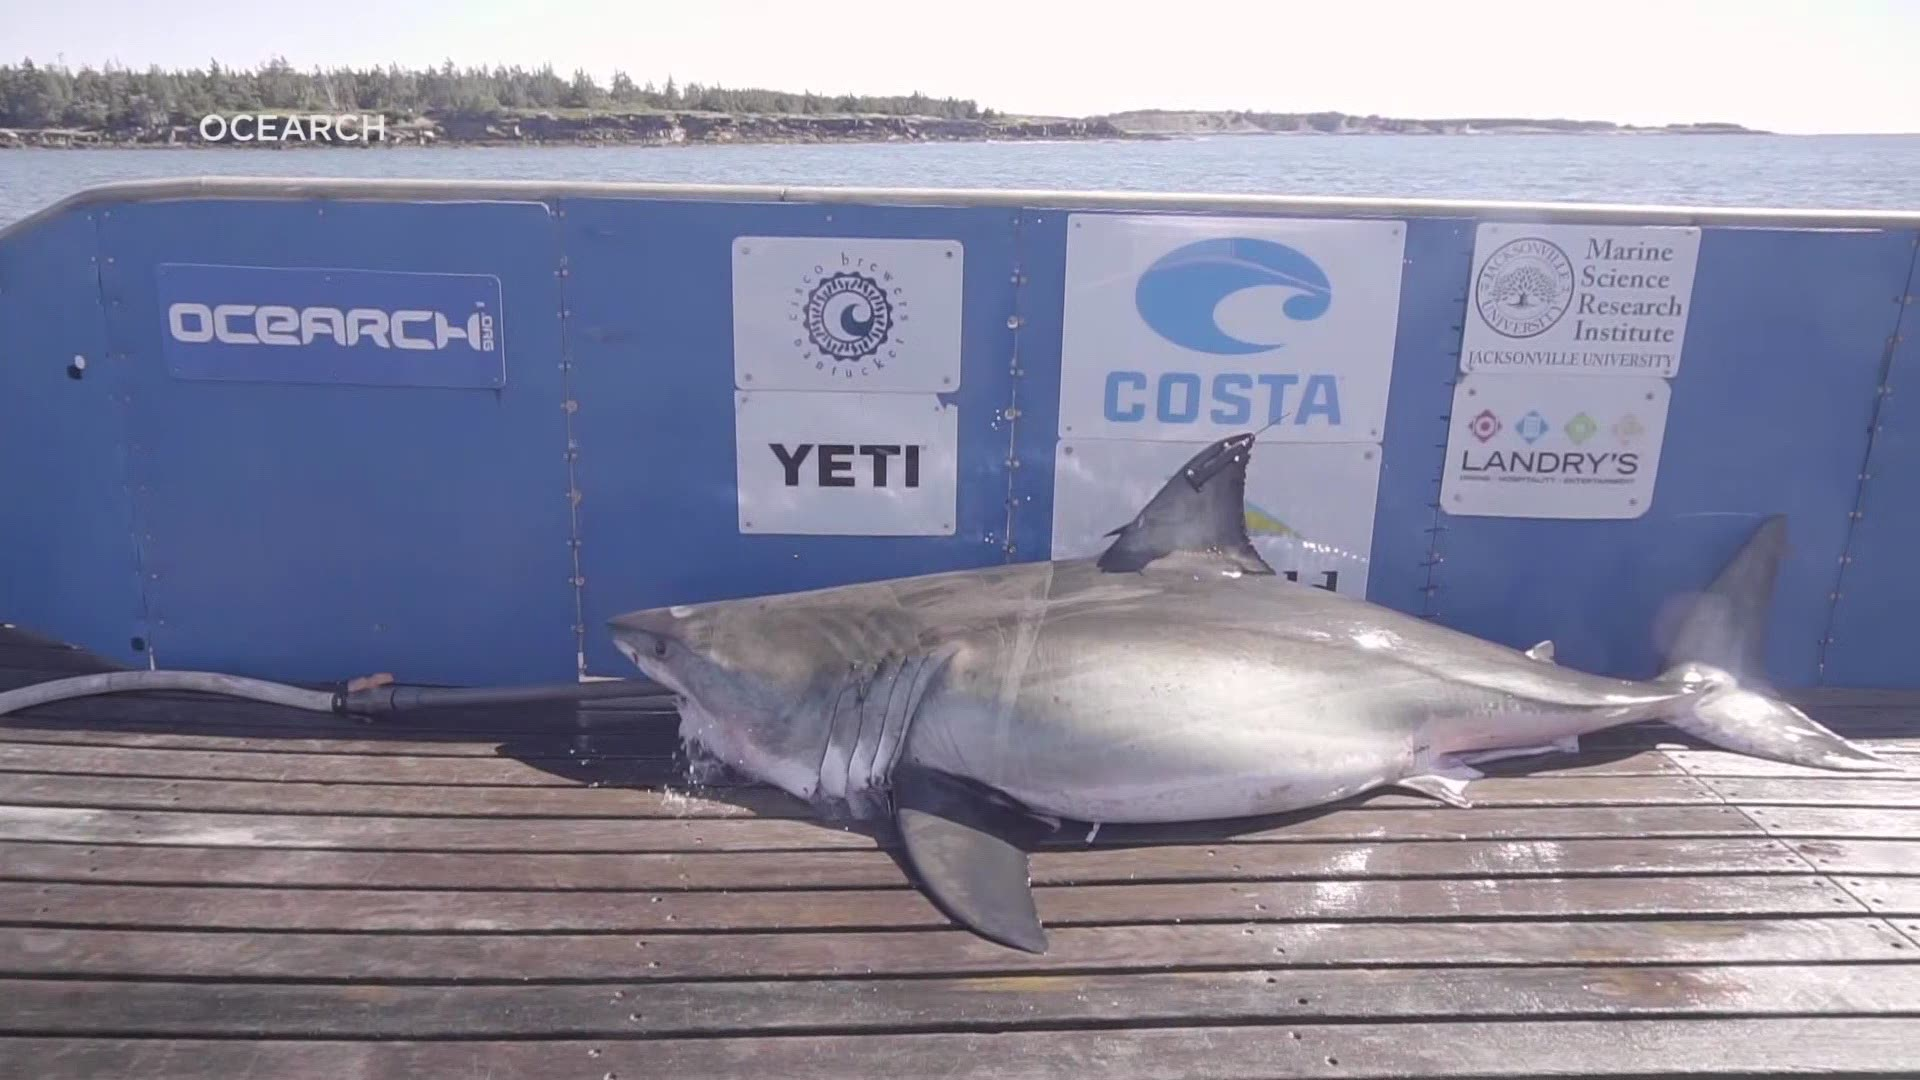 What S Attracting Mega Sharks To The Outer Banks Shipwrecks Wfmynews2 Com